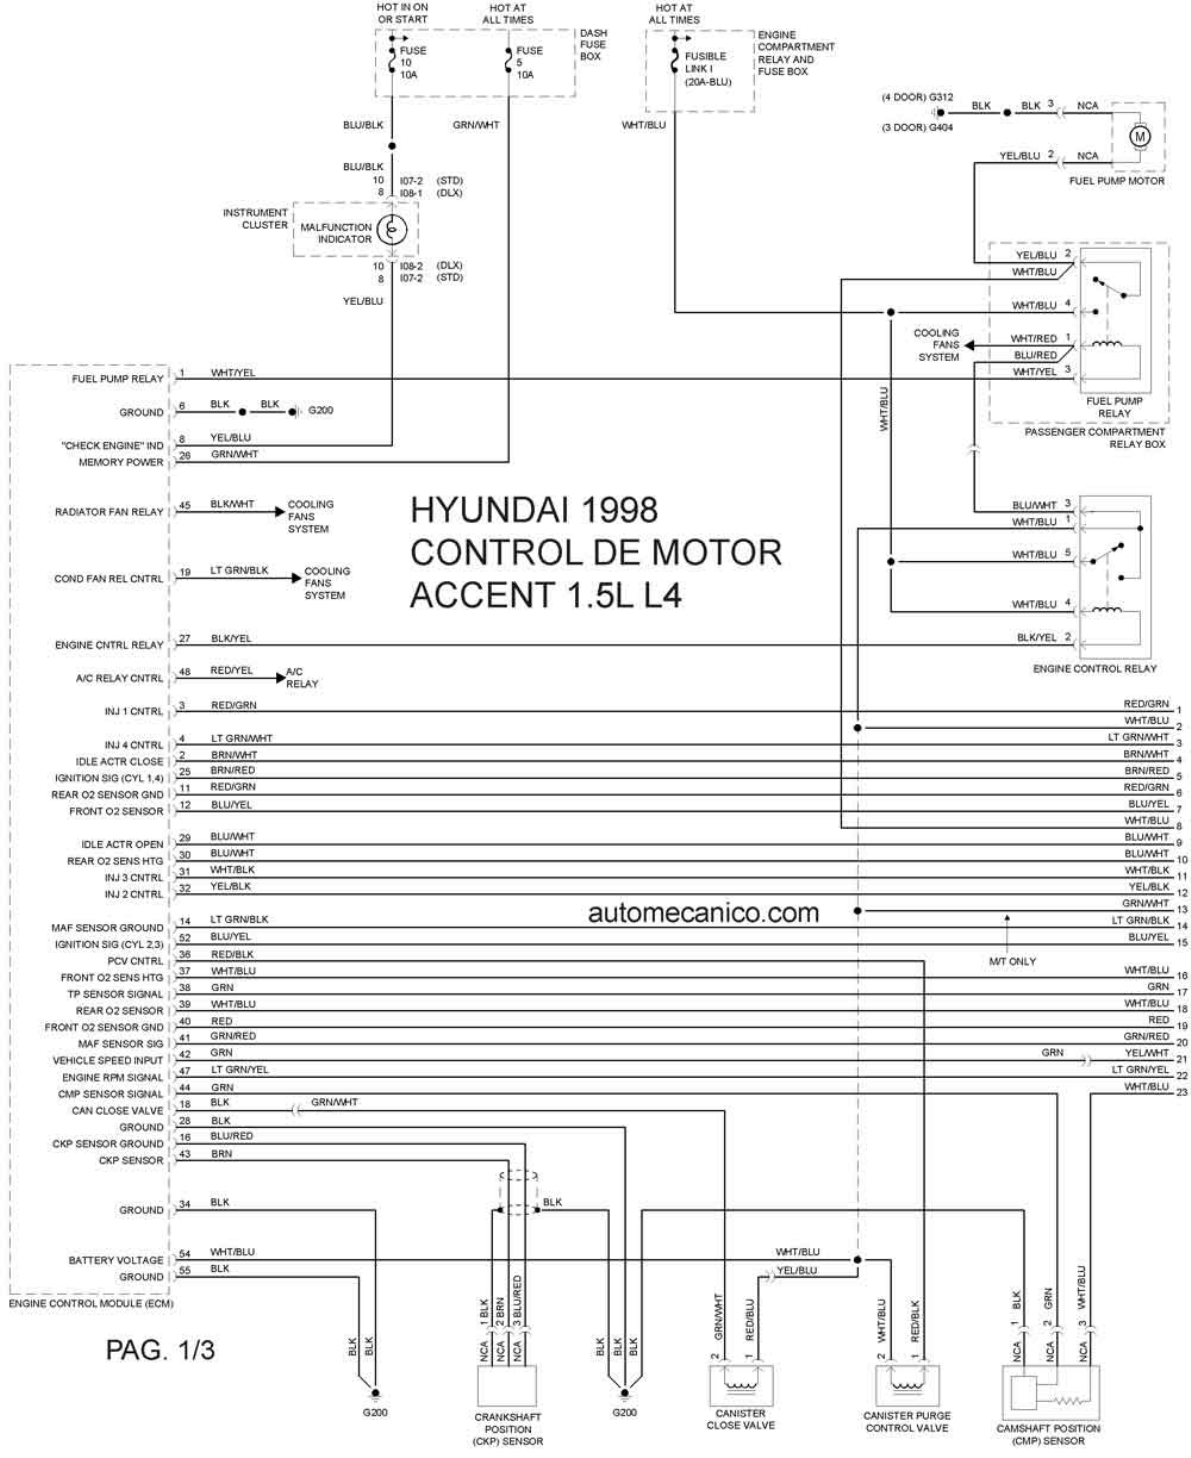 98 4 3l Engine Distributor Wiring Diagram | Wiring Liry Kia Picanto Wiring Diagram Pdf on kia fuel pump wiring, kia ecu diagram, 05 kia sportage radio wire diagram, kia air conditioning diagram, kia fuse diagram, kia relay diagram, kia sportage electrical diagram, kia radio wiring harness, kia steering diagram, kia parts diagram, kia engine diagram, kia soul stereo system wiring, kia transmission diagram, kia optima stereo diagram, 2012 kia optima radio diagram, kia belt diagram, kia service,